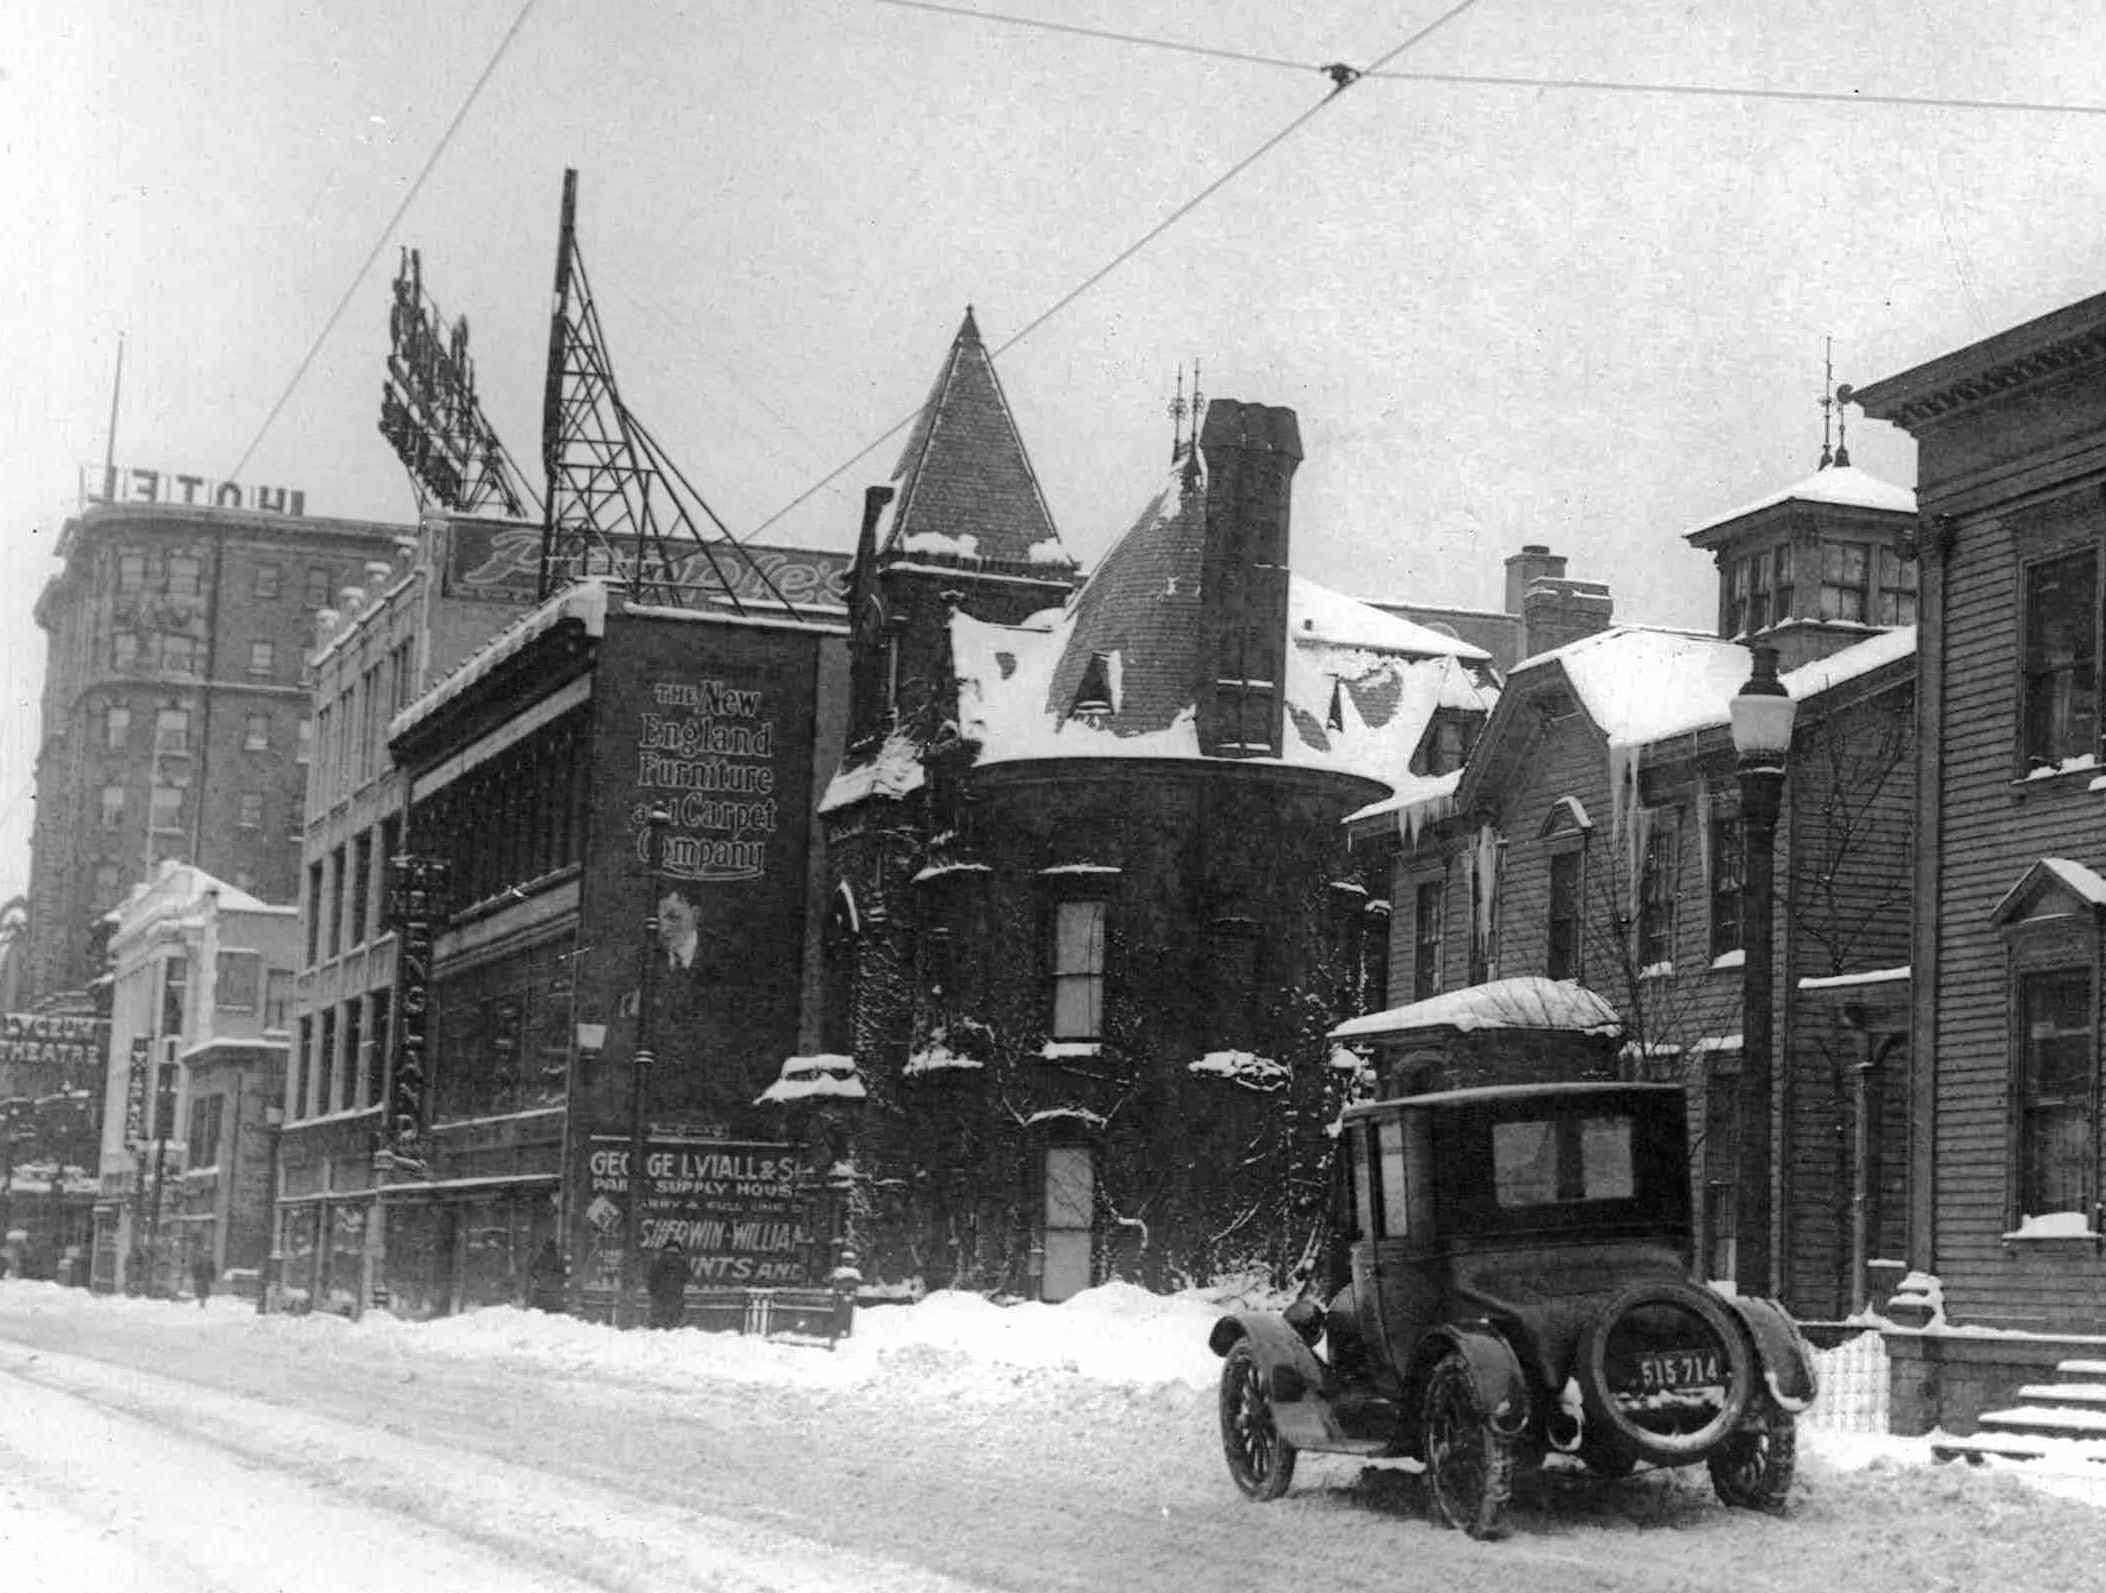 The New England Furniture and Carpet Company, the Lyceum Theatre and Hotel Seneca are shown on Clinton Ave. (staff photo's 1920'). The Lyceum closed in 1934.